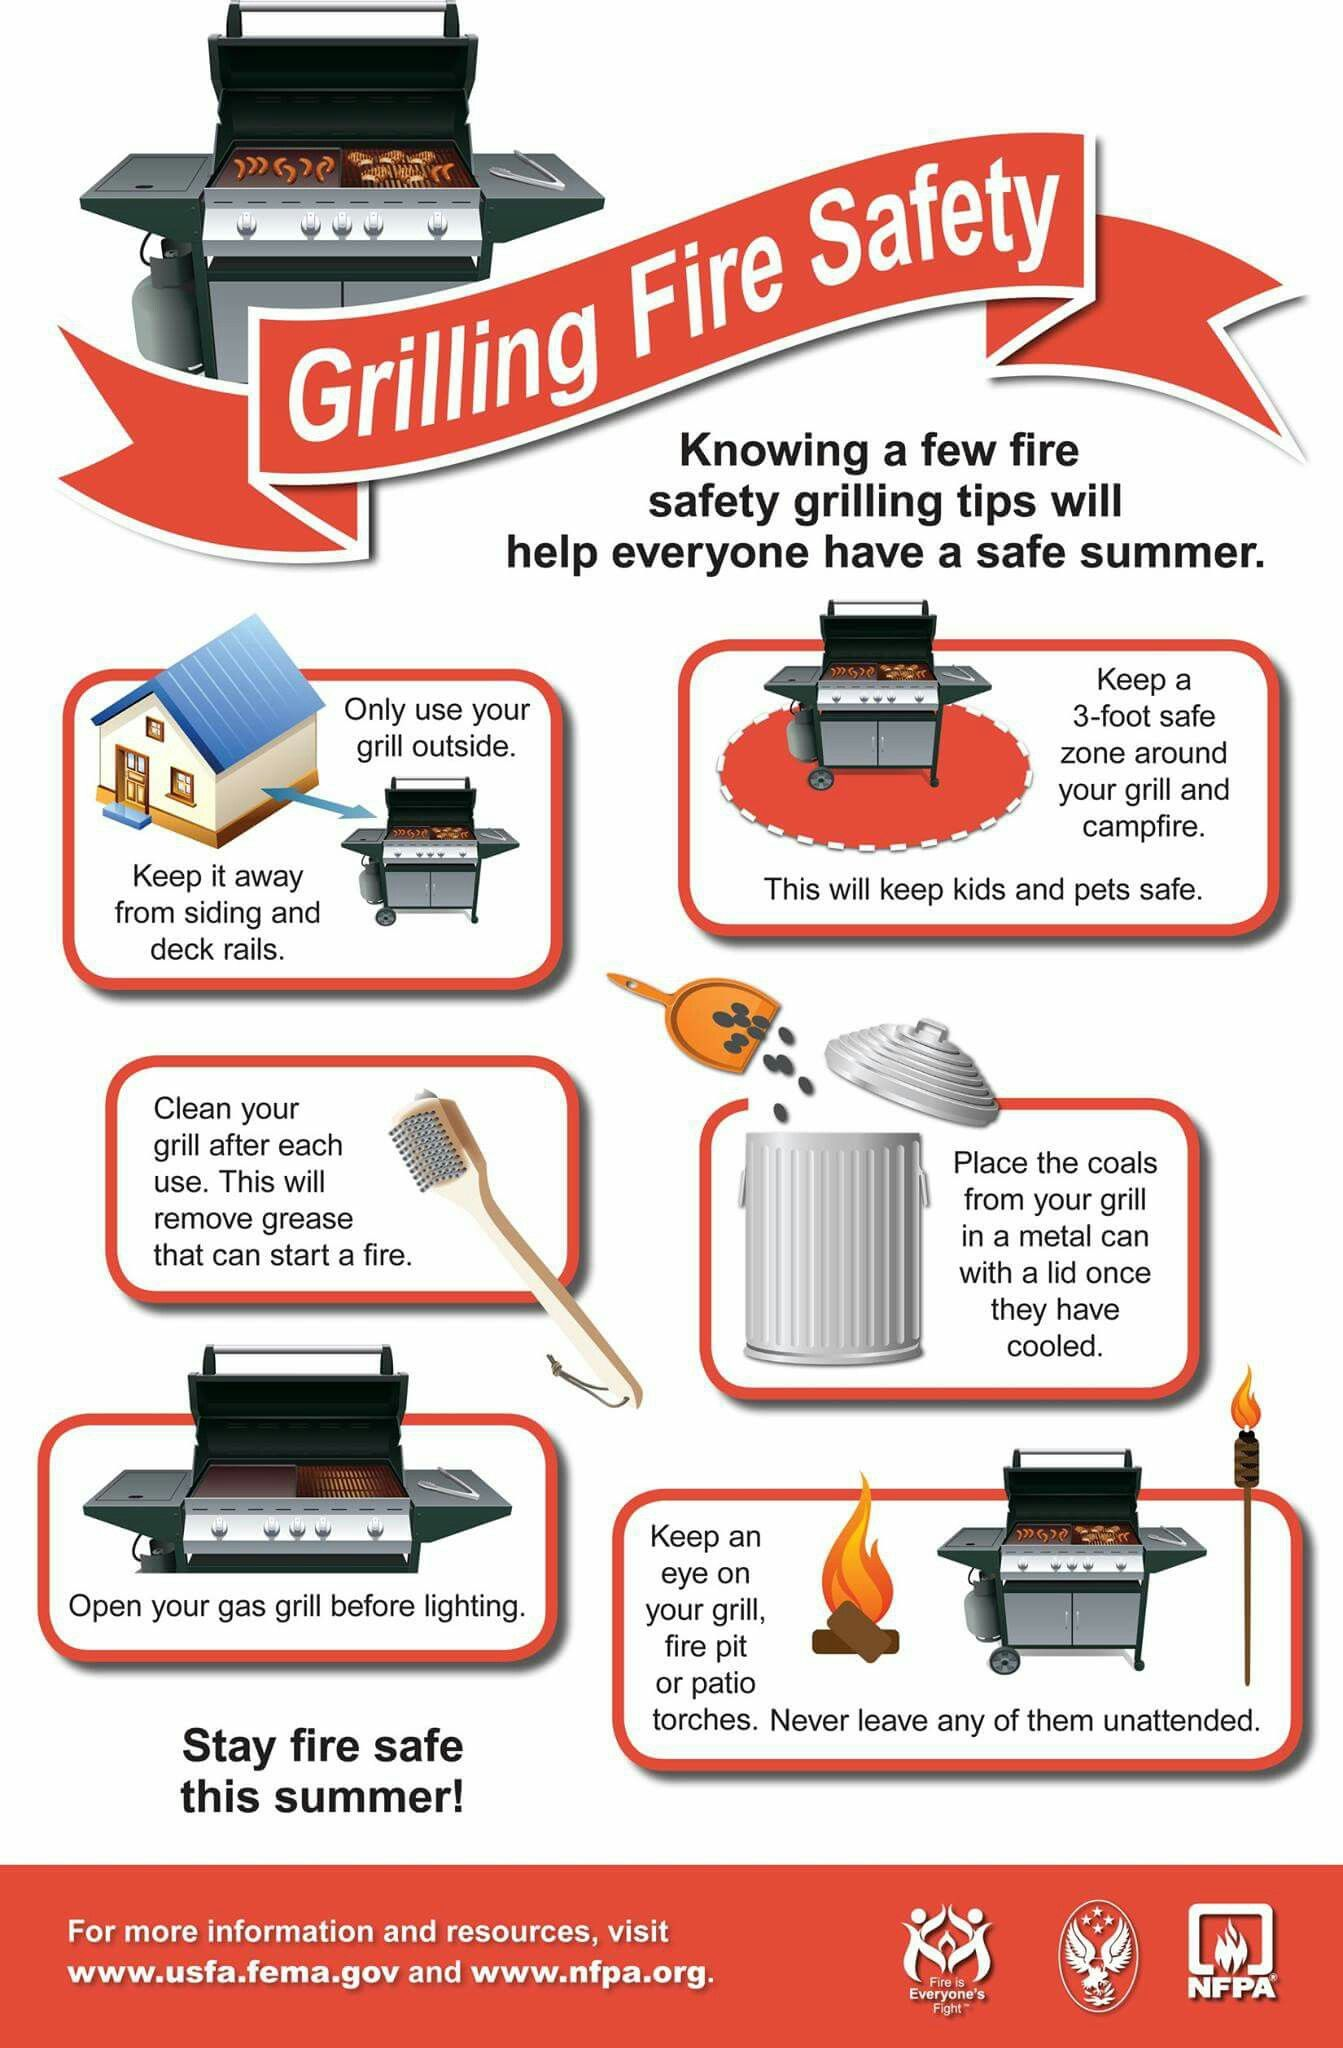 Pin by April Safi on Household stuff Grilling safety